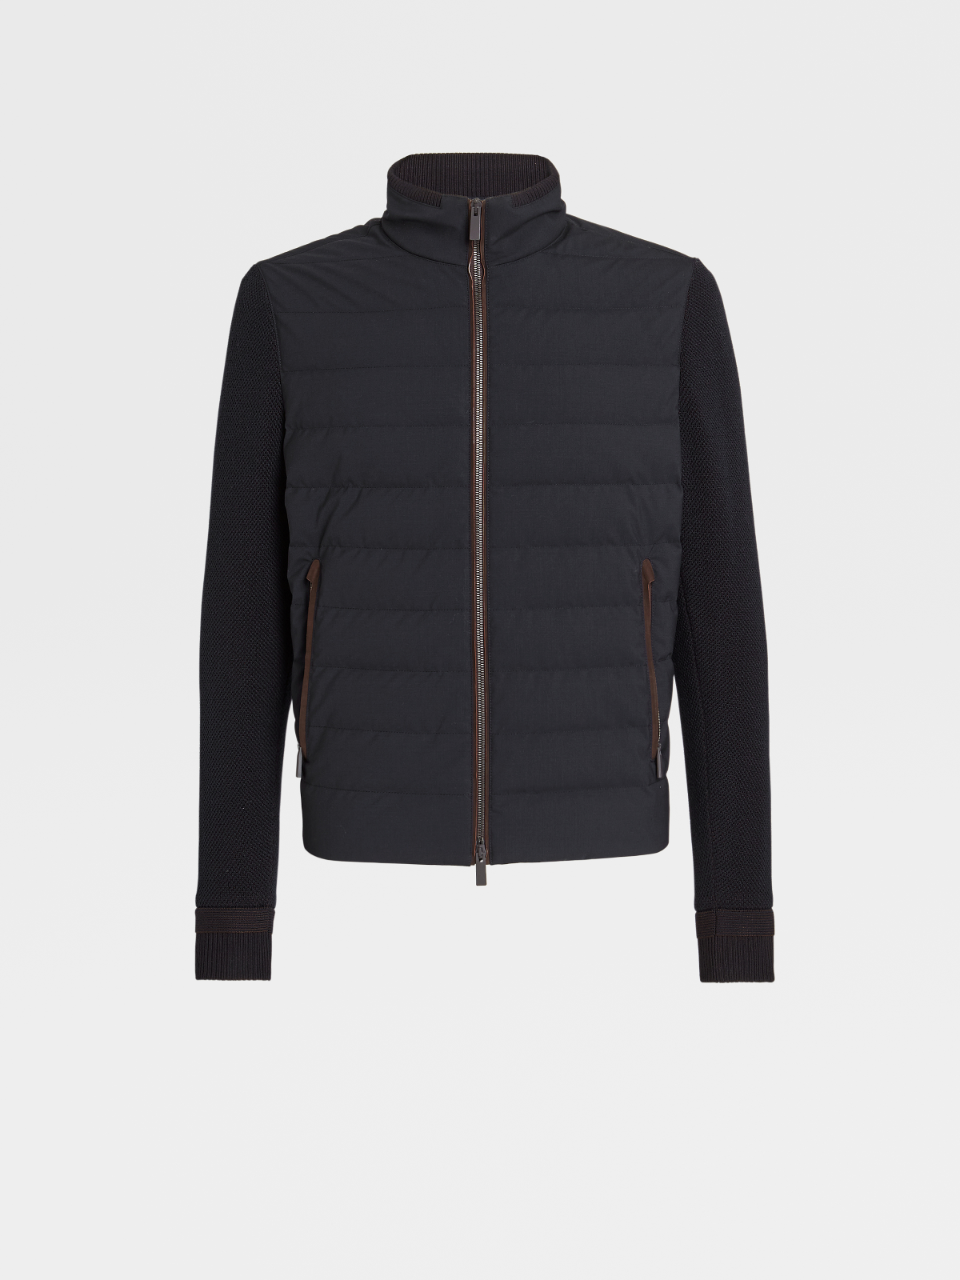 Trofeo Elements Wool And Cotton Down Jacket